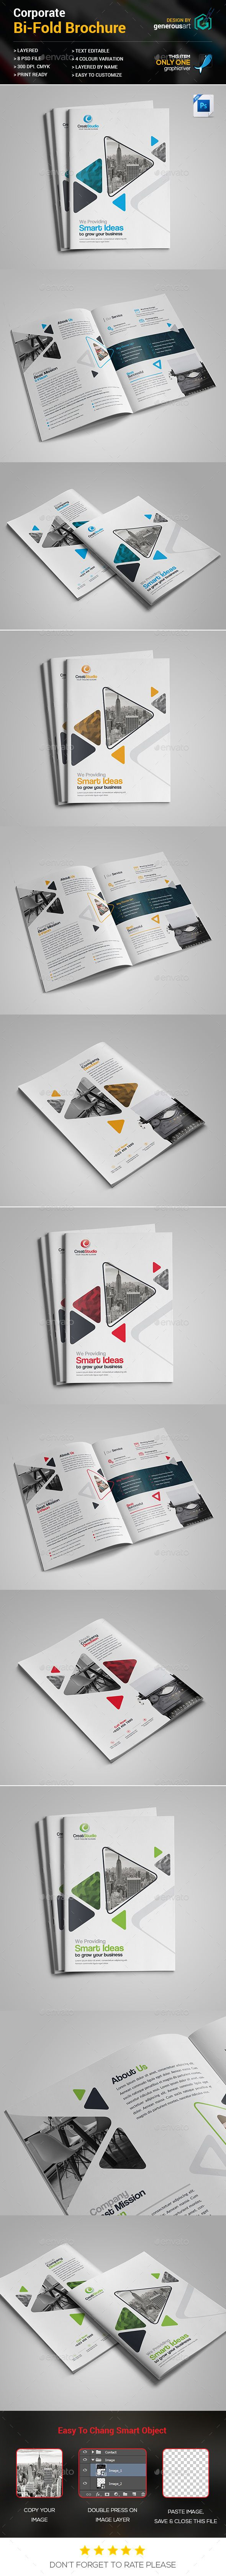 Business BiFold Brochure — Photoshop PSD #standard #black • Download ➝ https://graphicriver.net/item/business-bifold-brochure/19287577?ref=pxcr